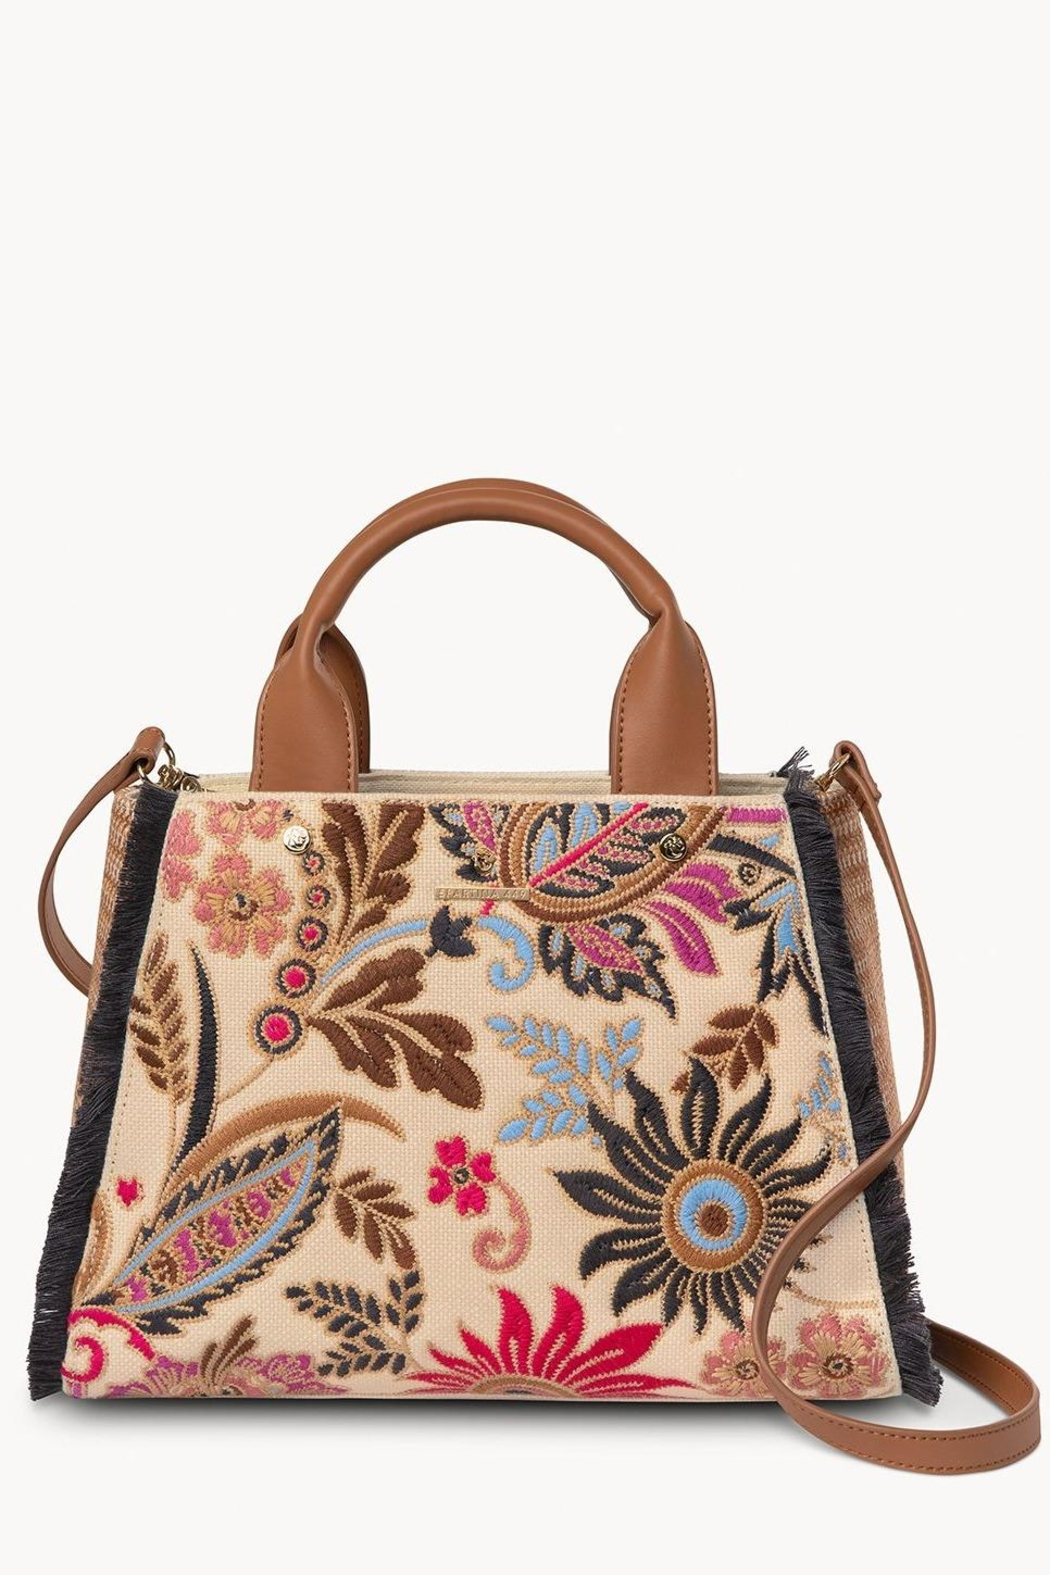 Spartina 449 Barbee Floral Satchel - Main Image